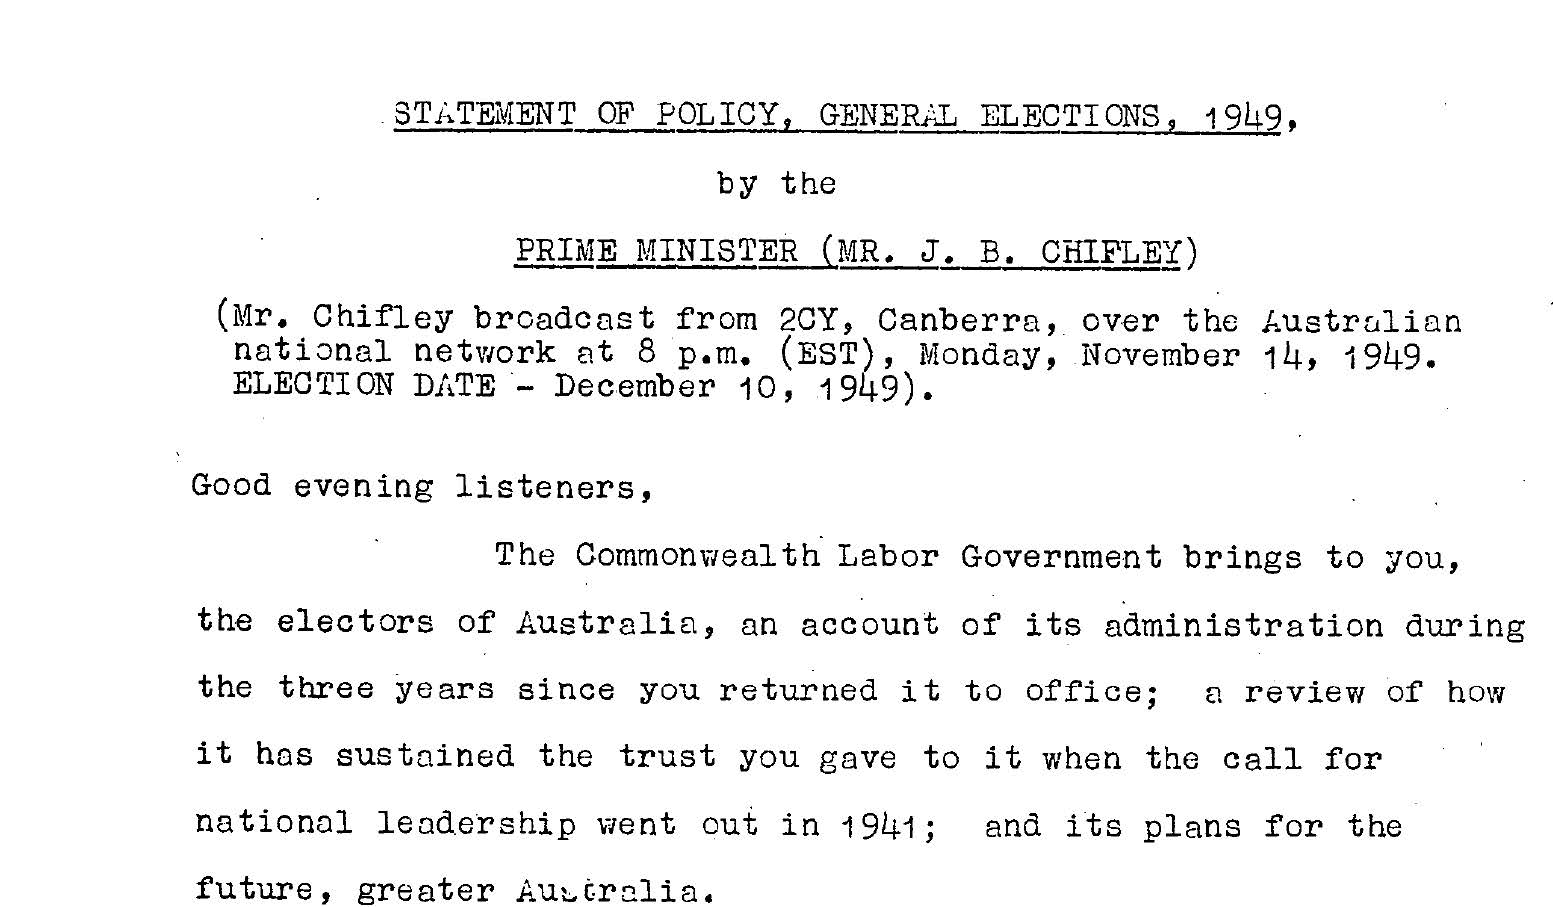 Statement of Policy General Elections, 1948 by the Prime Minister